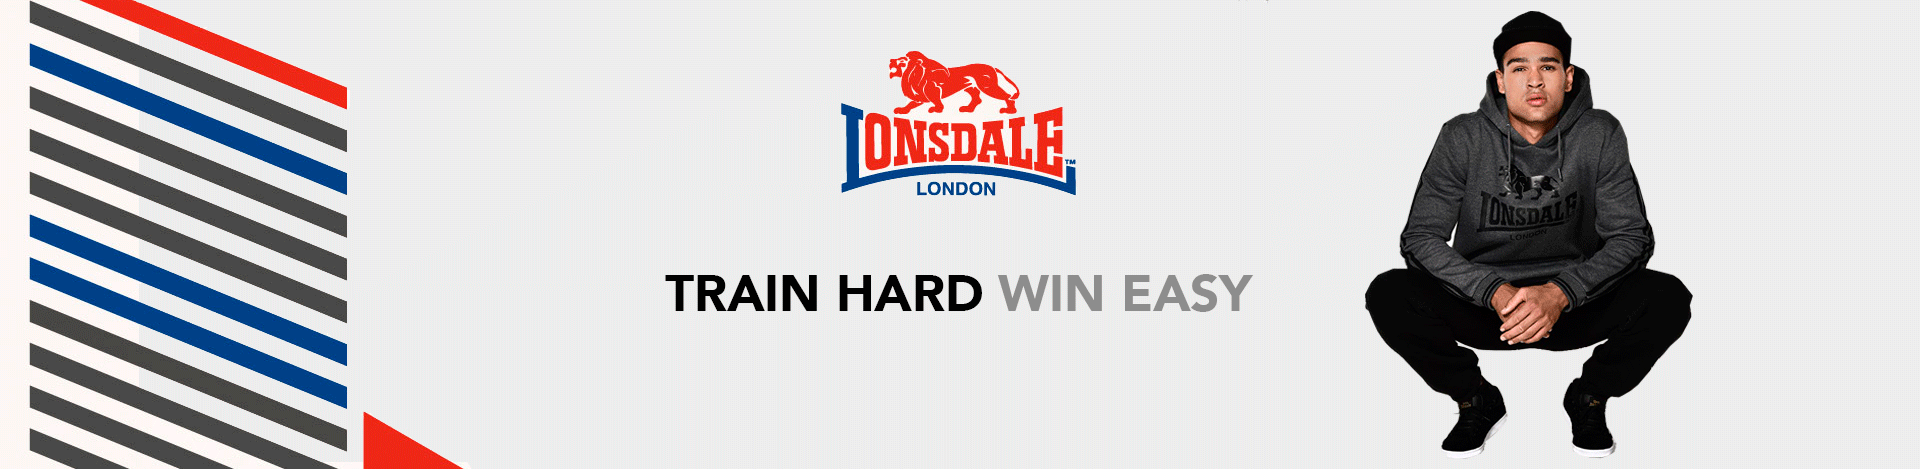 lonsdale_banner